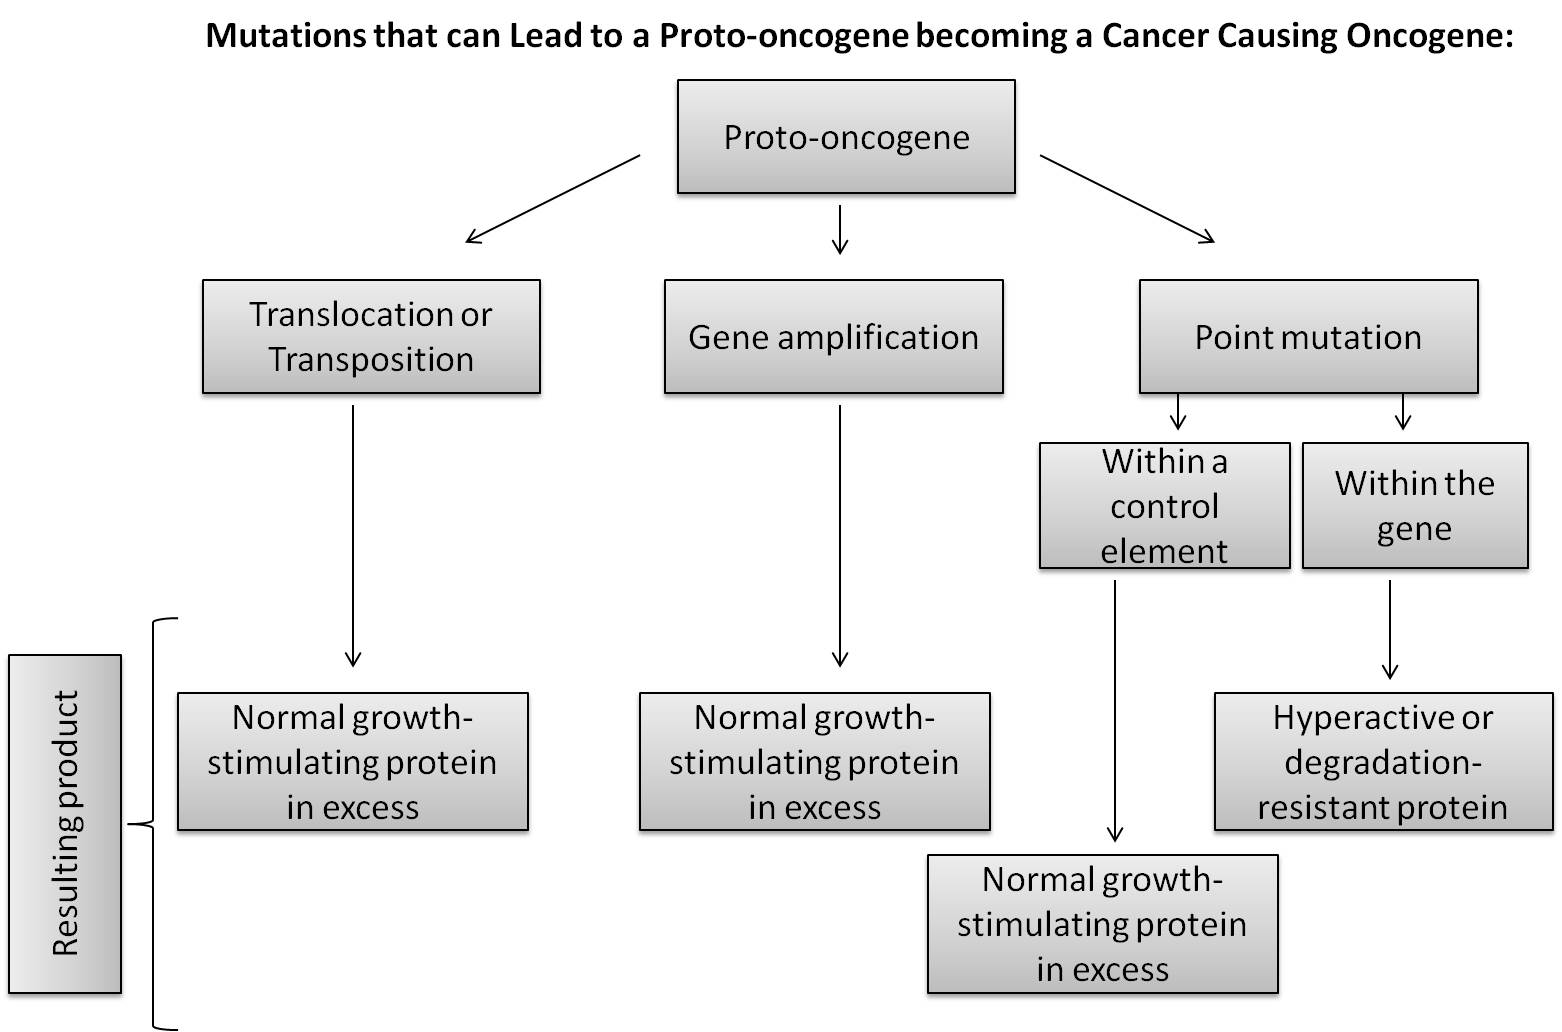 Convection Conversion Chart: Conversion of proto-oncogene flow chart.jpg - Wikimedia Commons,Chart